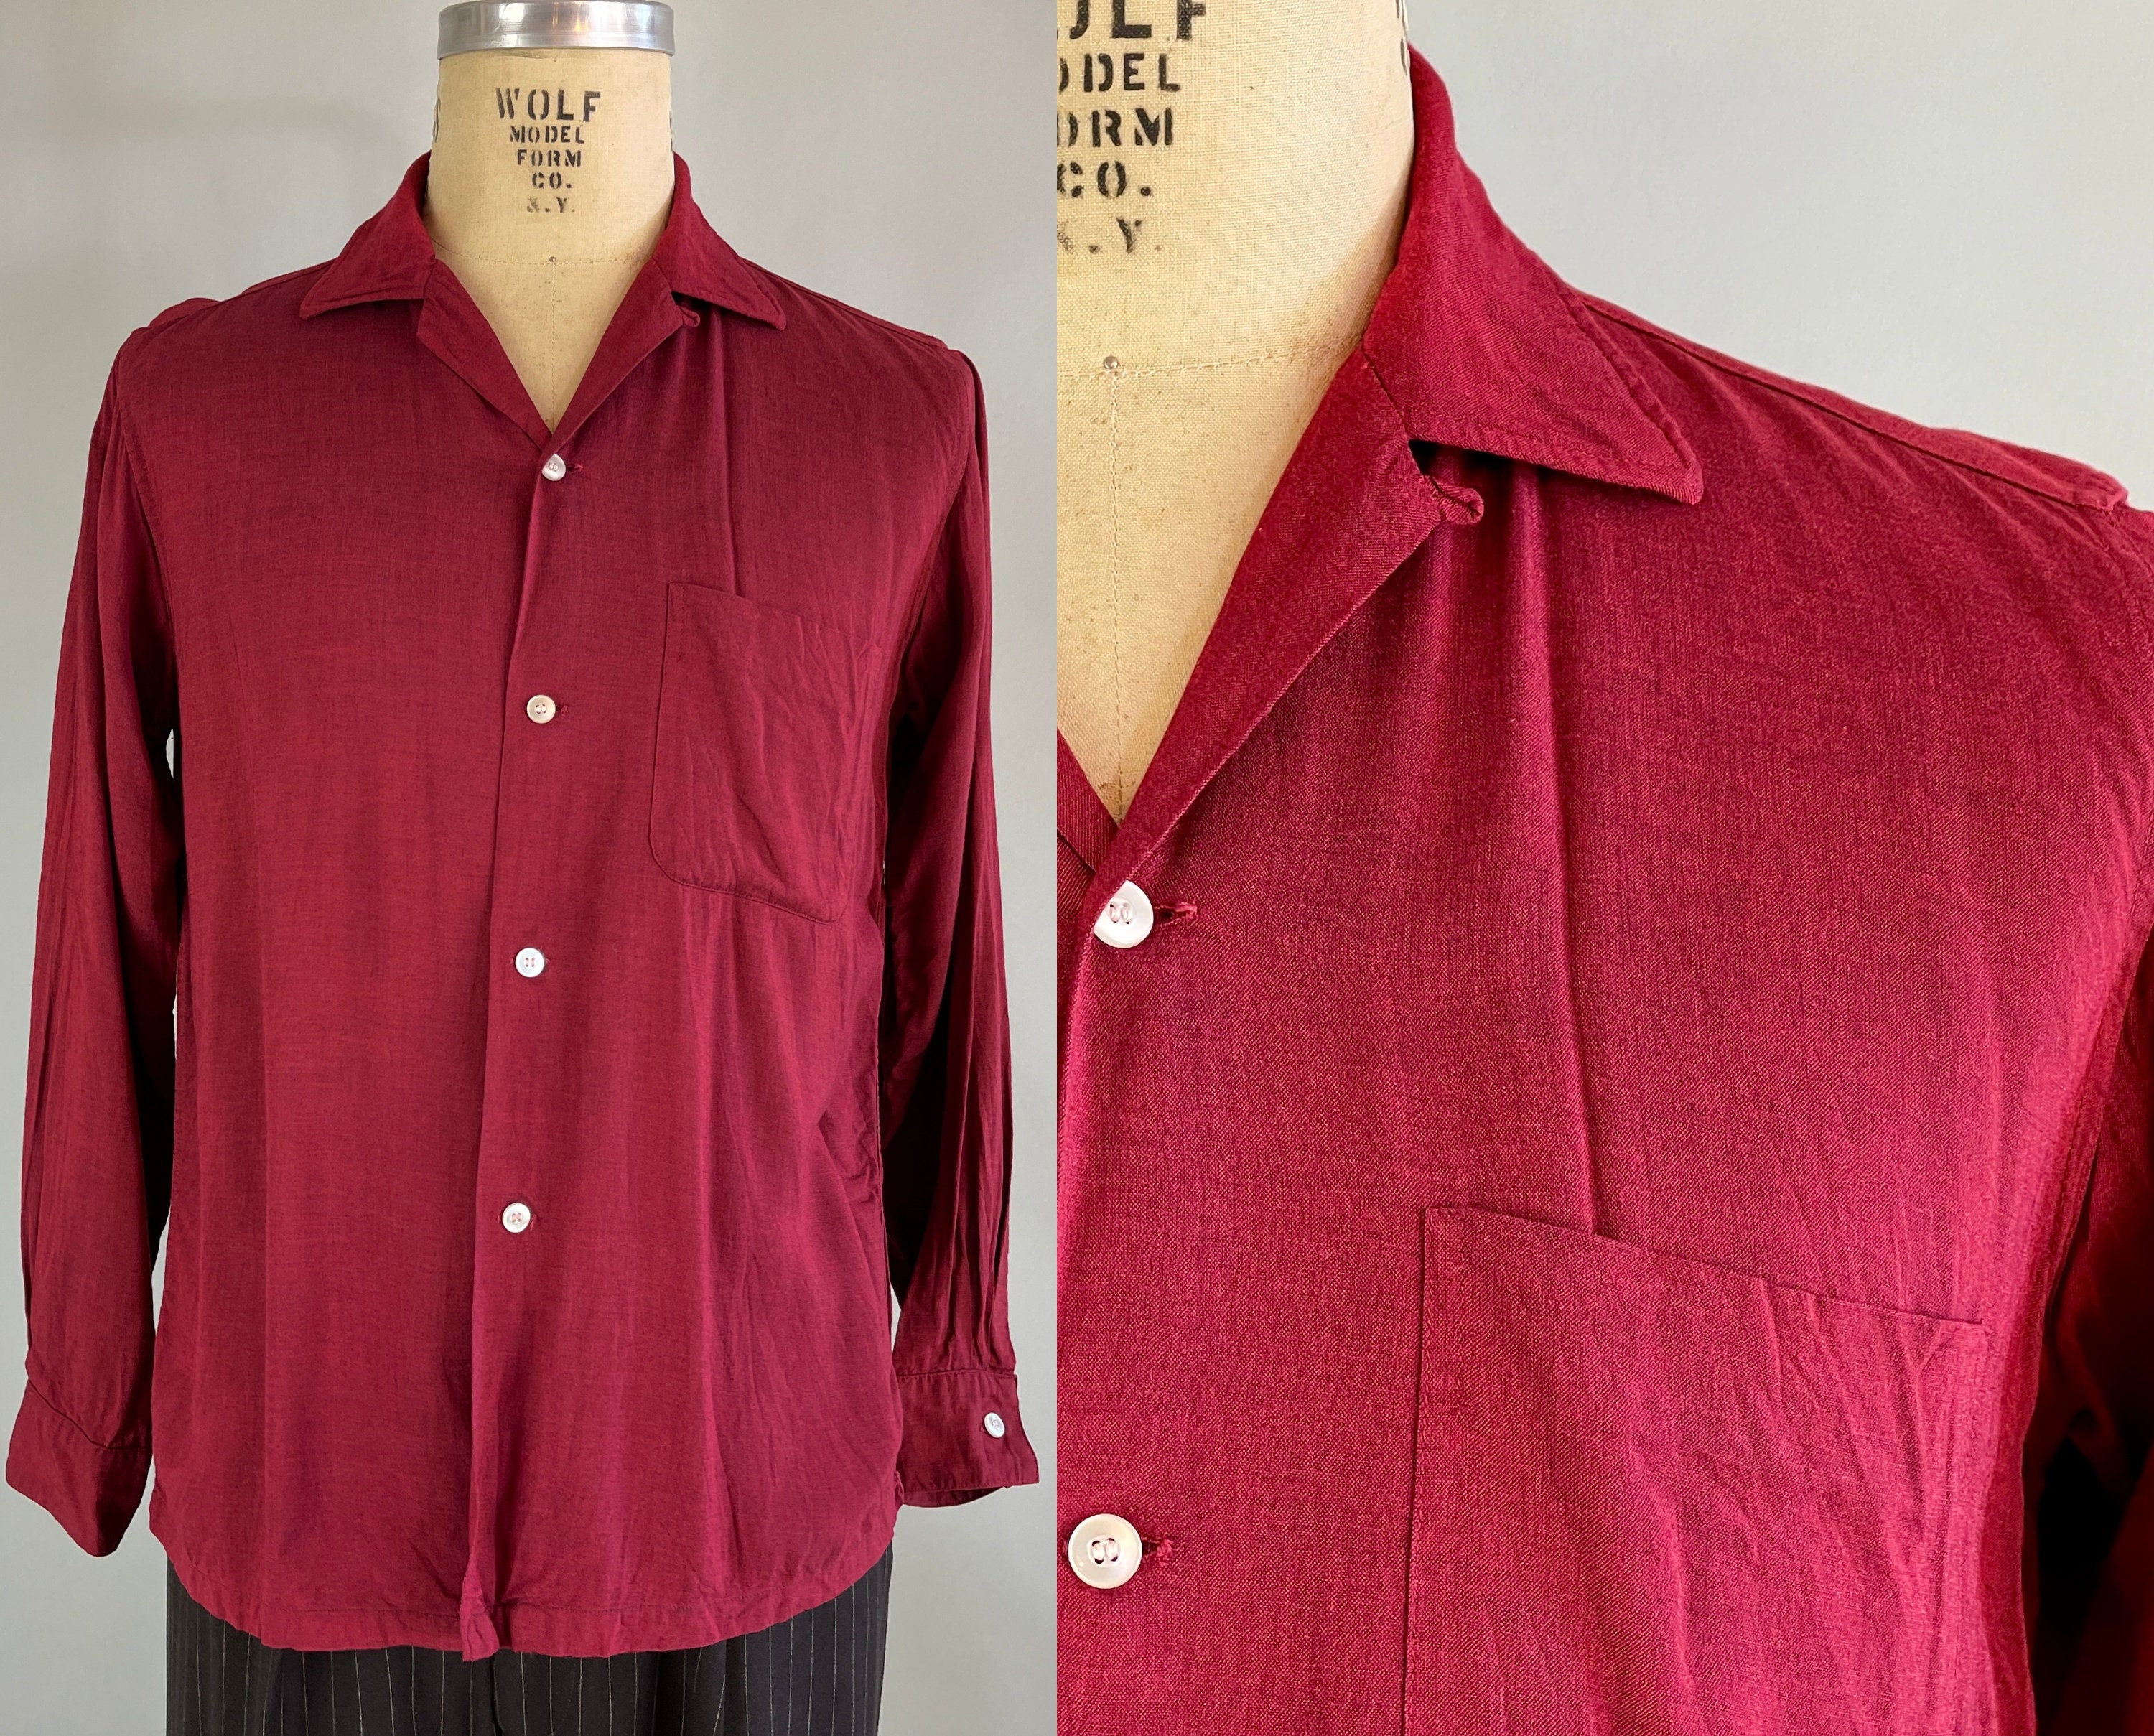 1950s Men's Ties, Bow Ties – Vintage, Skinny, Knit 1950S Heather Burgundy Mens Shirt  Vintage 50S Arrow Red Rayon Button Up Camp With Patch Pocket  Top Loop Medium $95.00 AT vintagedancer.com